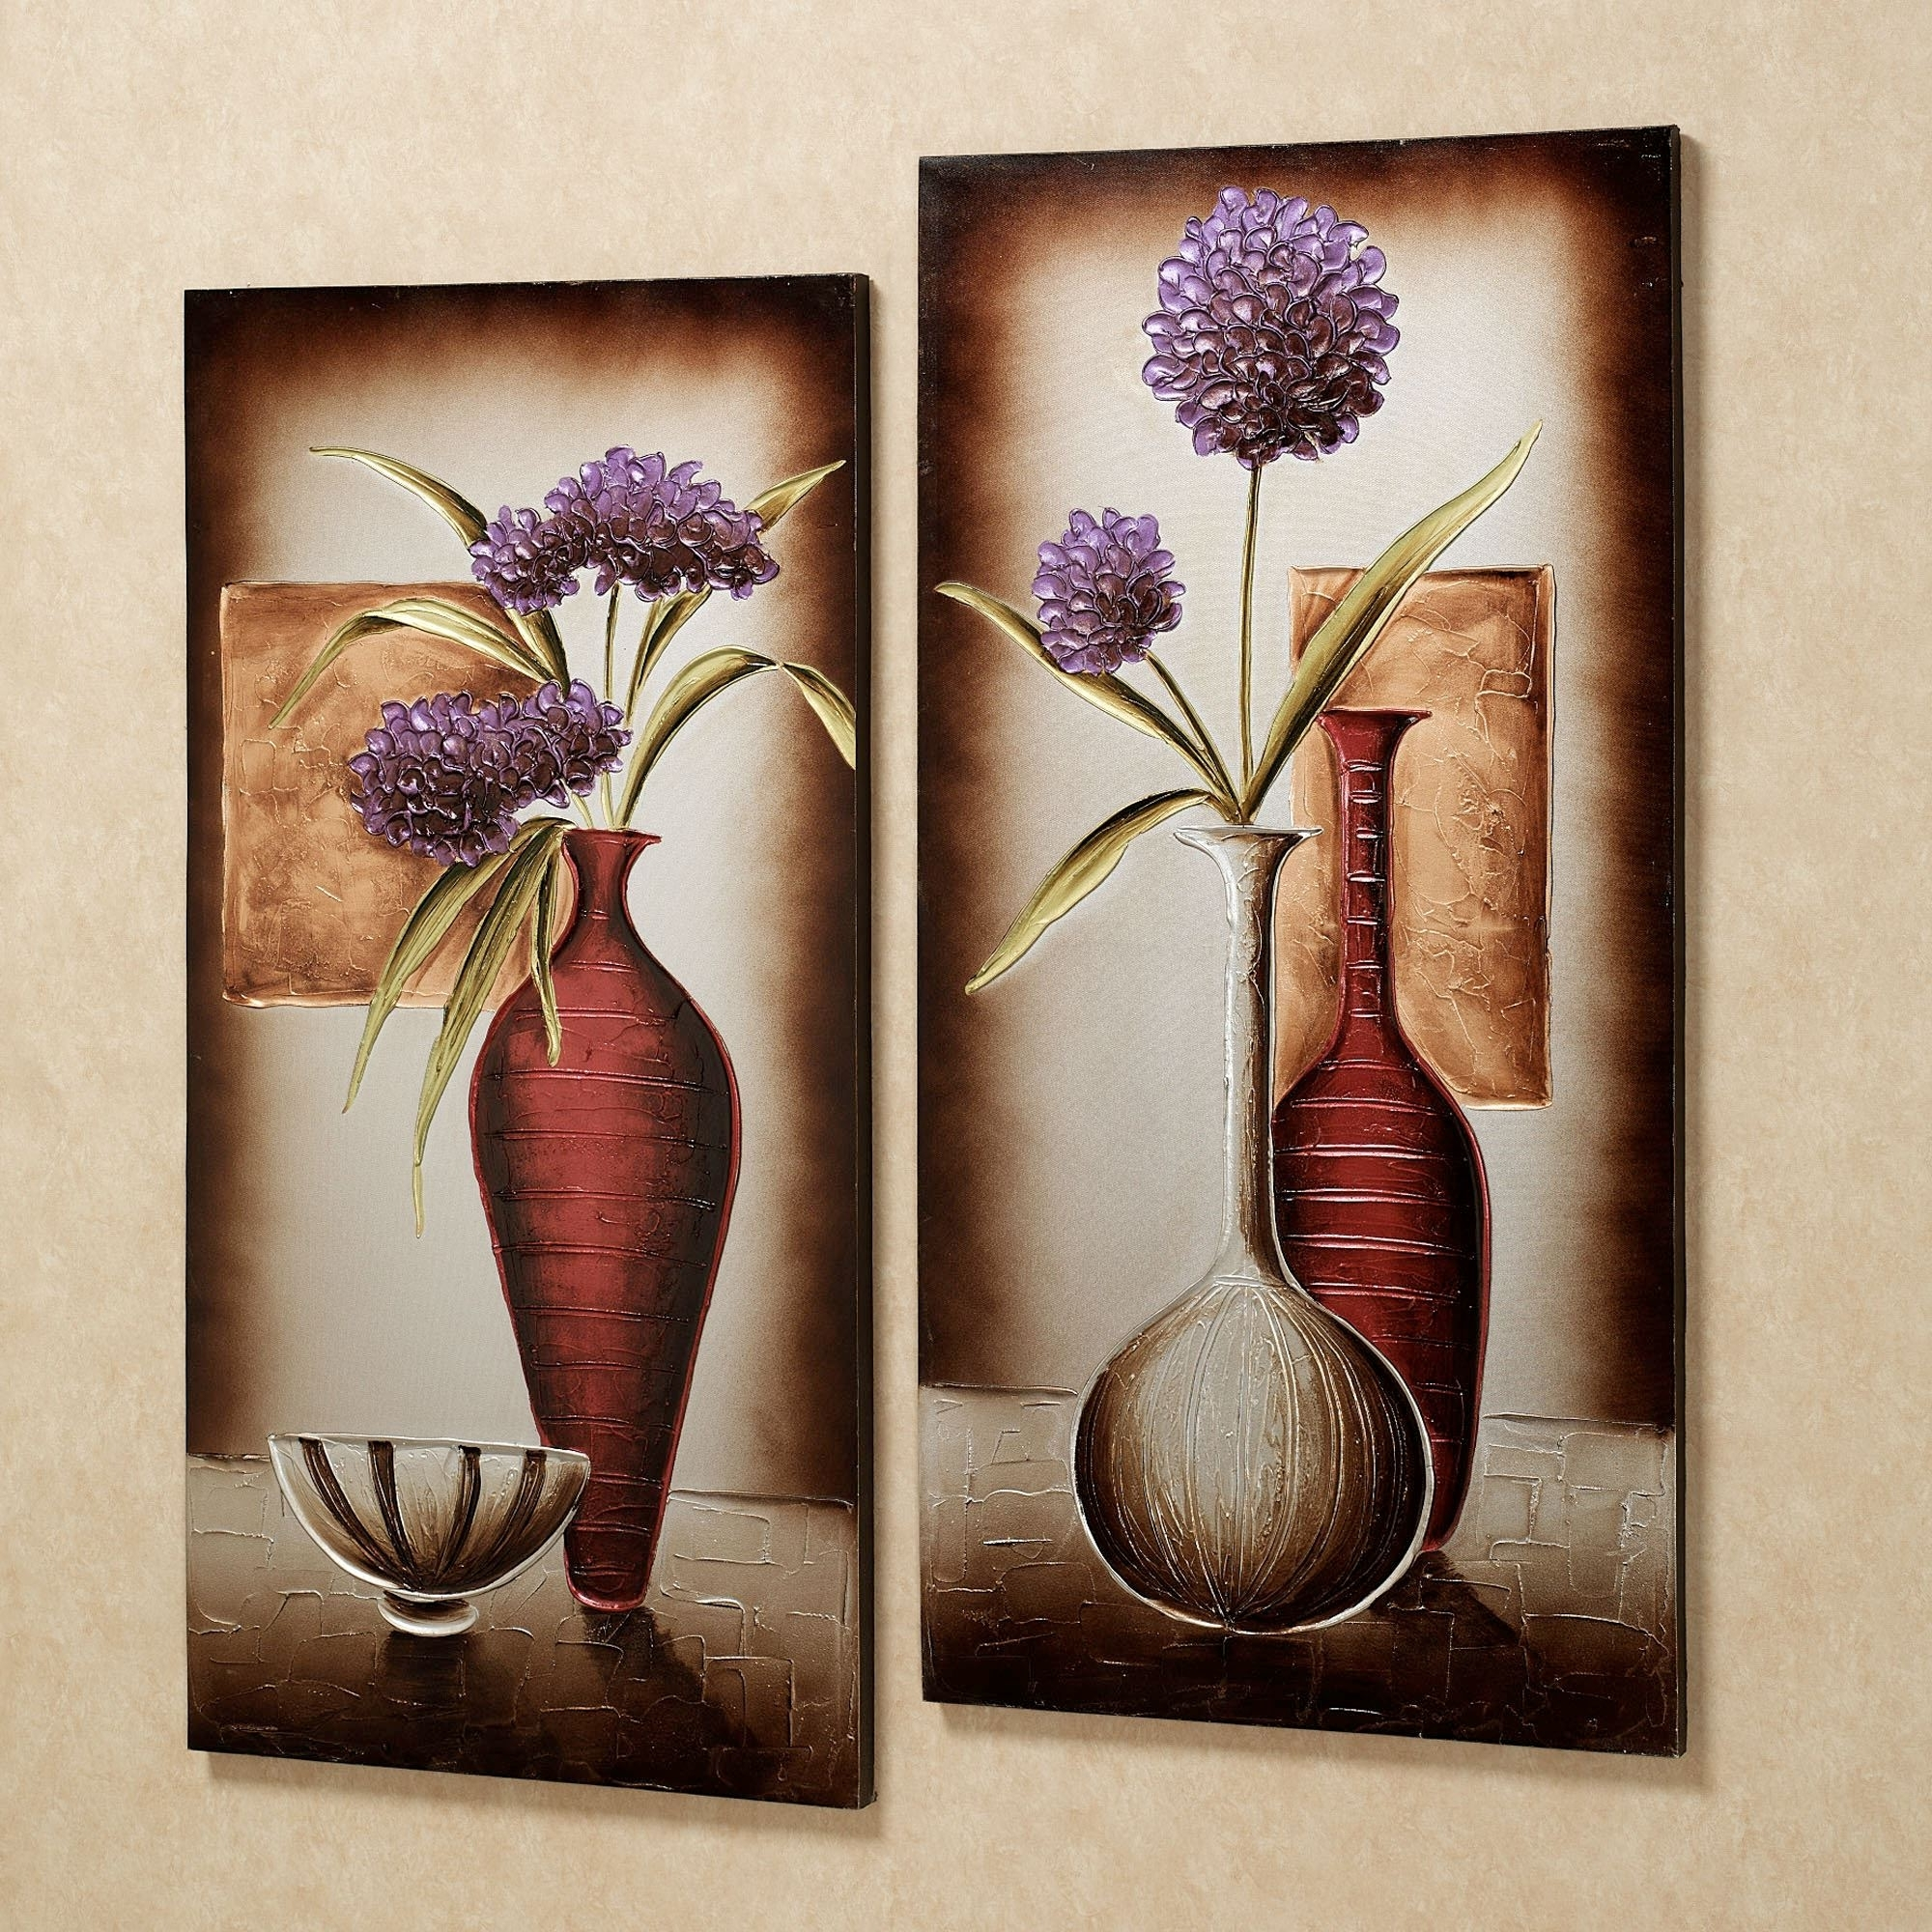 Matching Wall Art Pertaining To Trendy Wall Art Designs: Wall Art Sets Floral Tranquility Canvas Wall Art (View 14 of 15)